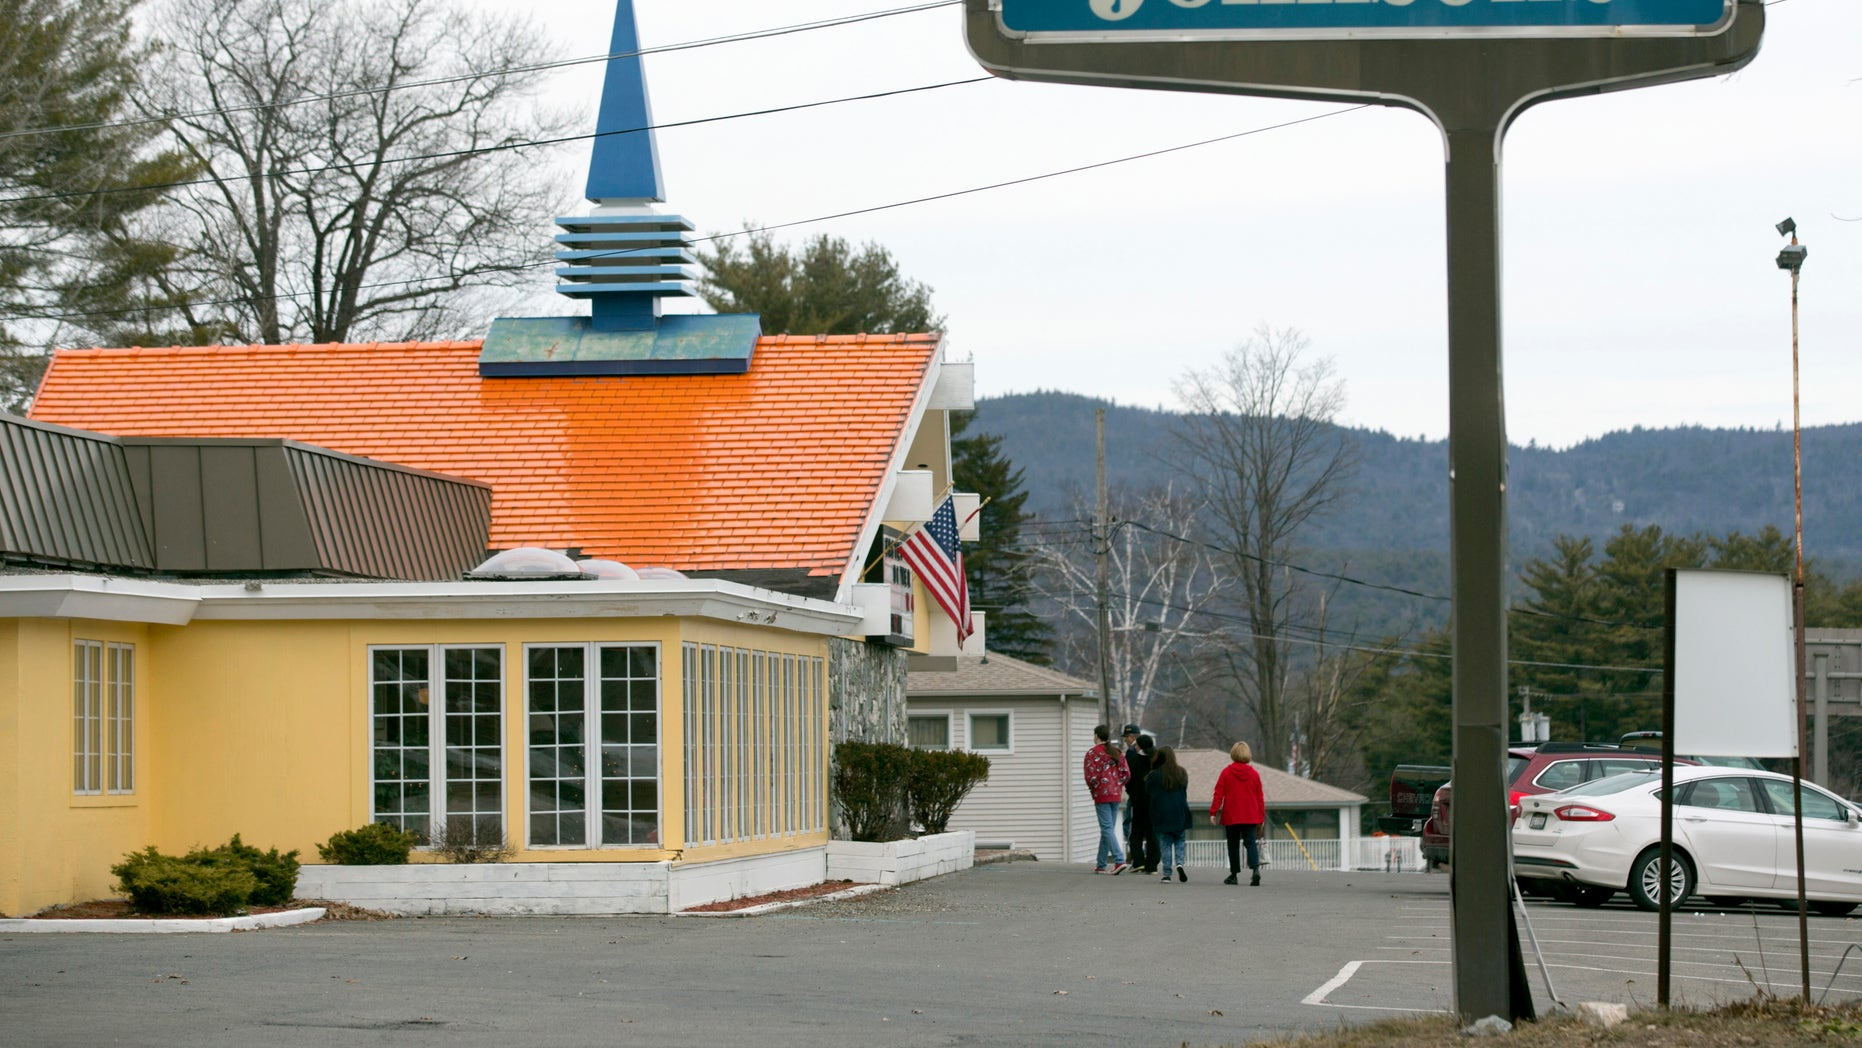 Customers walk into a Howard Johnson's in Lake George, N.Y. in this file photo.